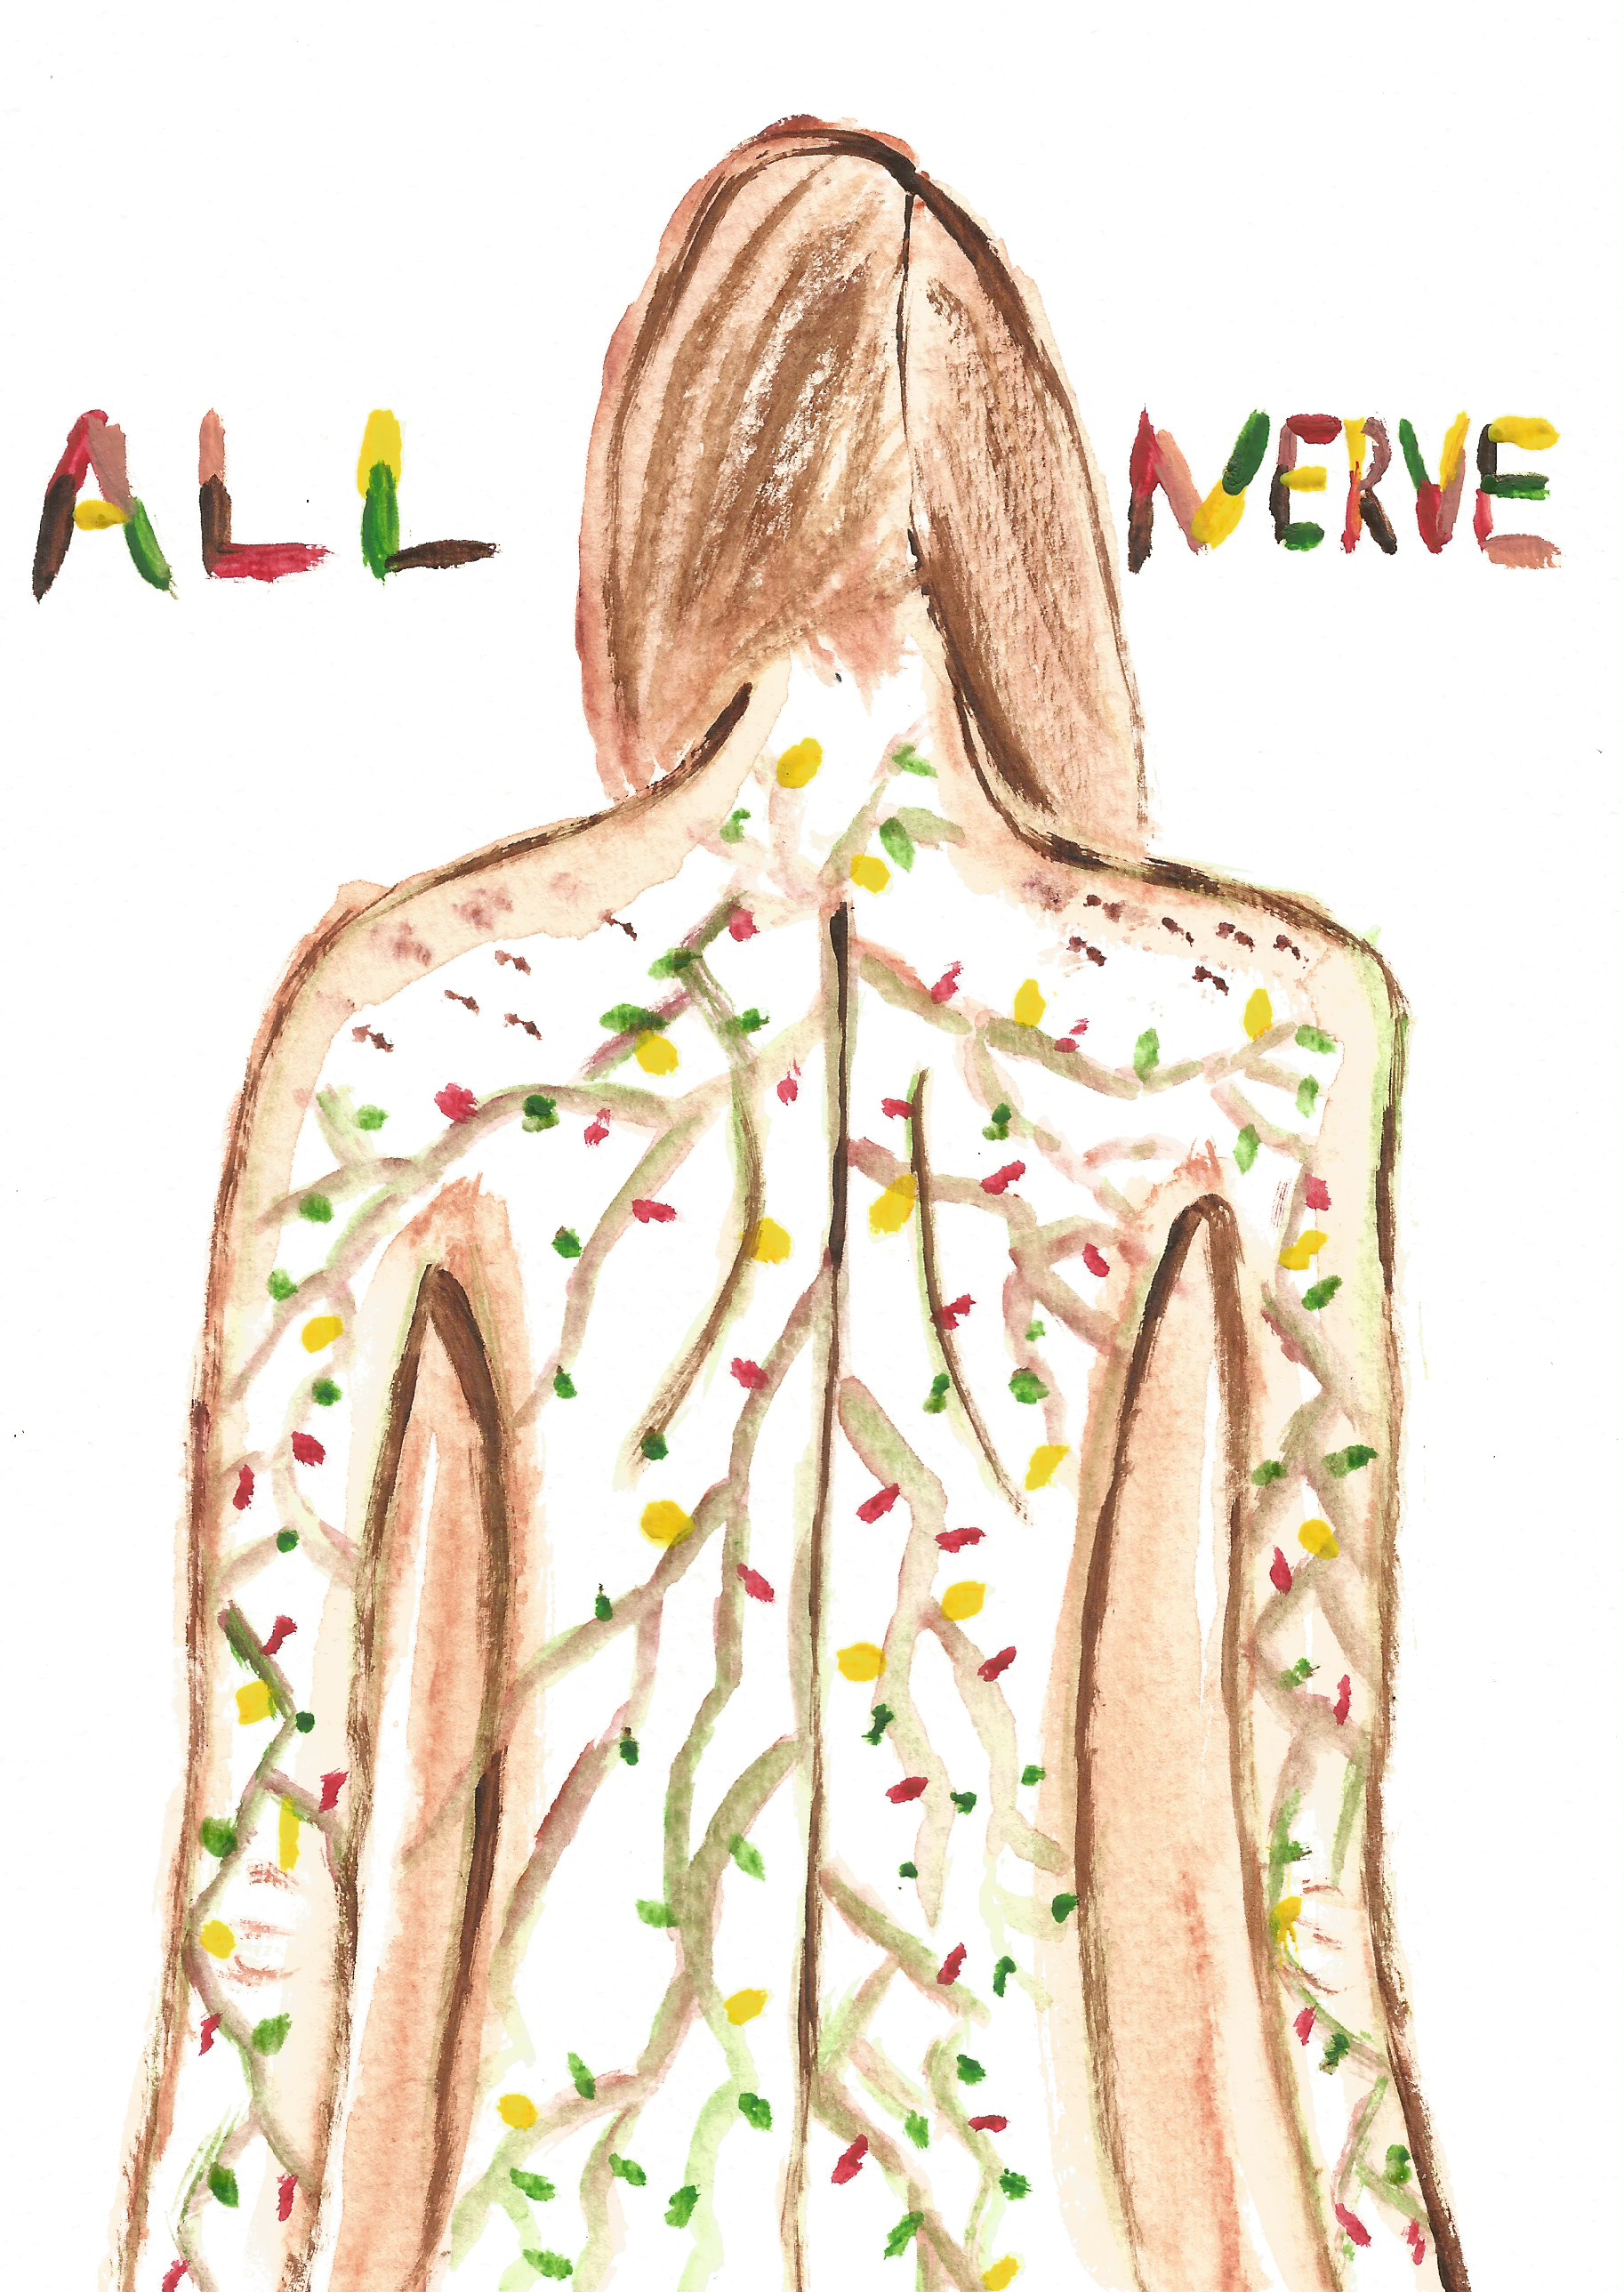 All Nerve